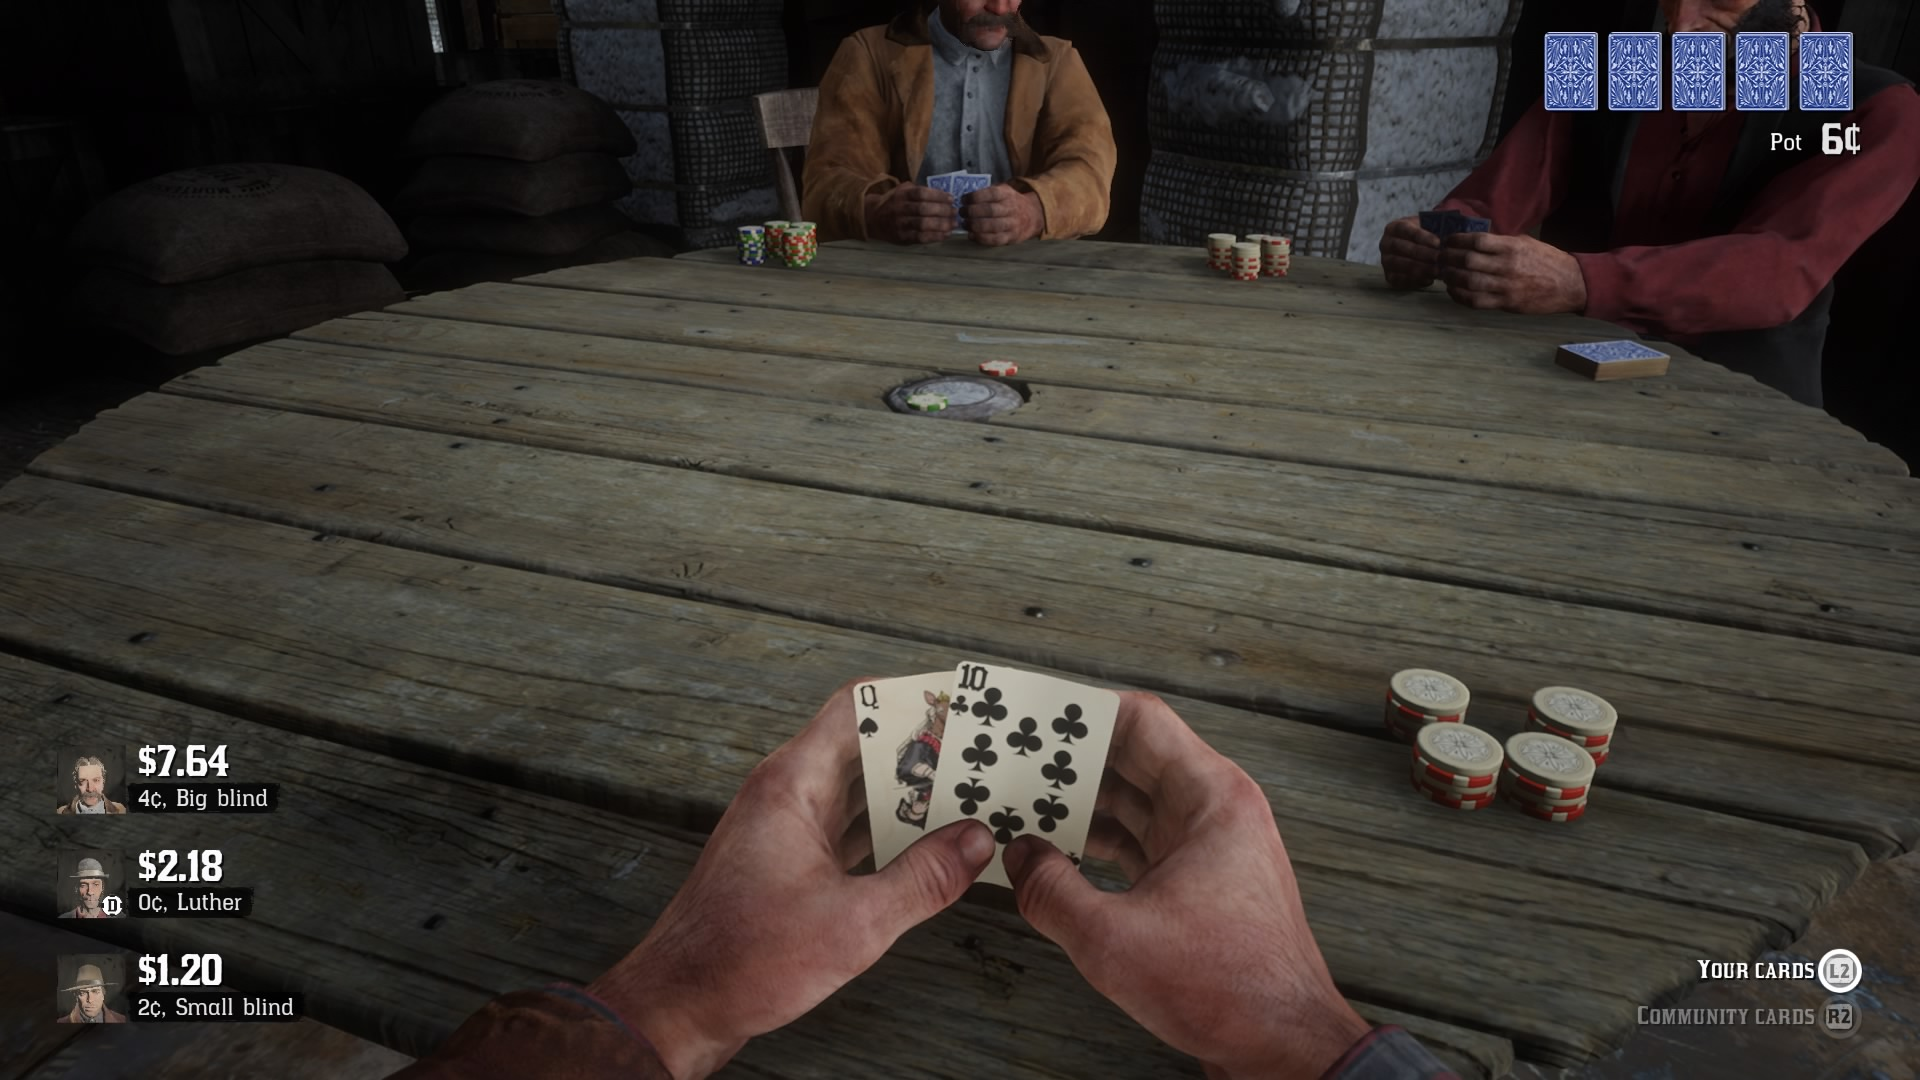 Rockstar addresses missing gang member bug in Red Dead Redemption 2